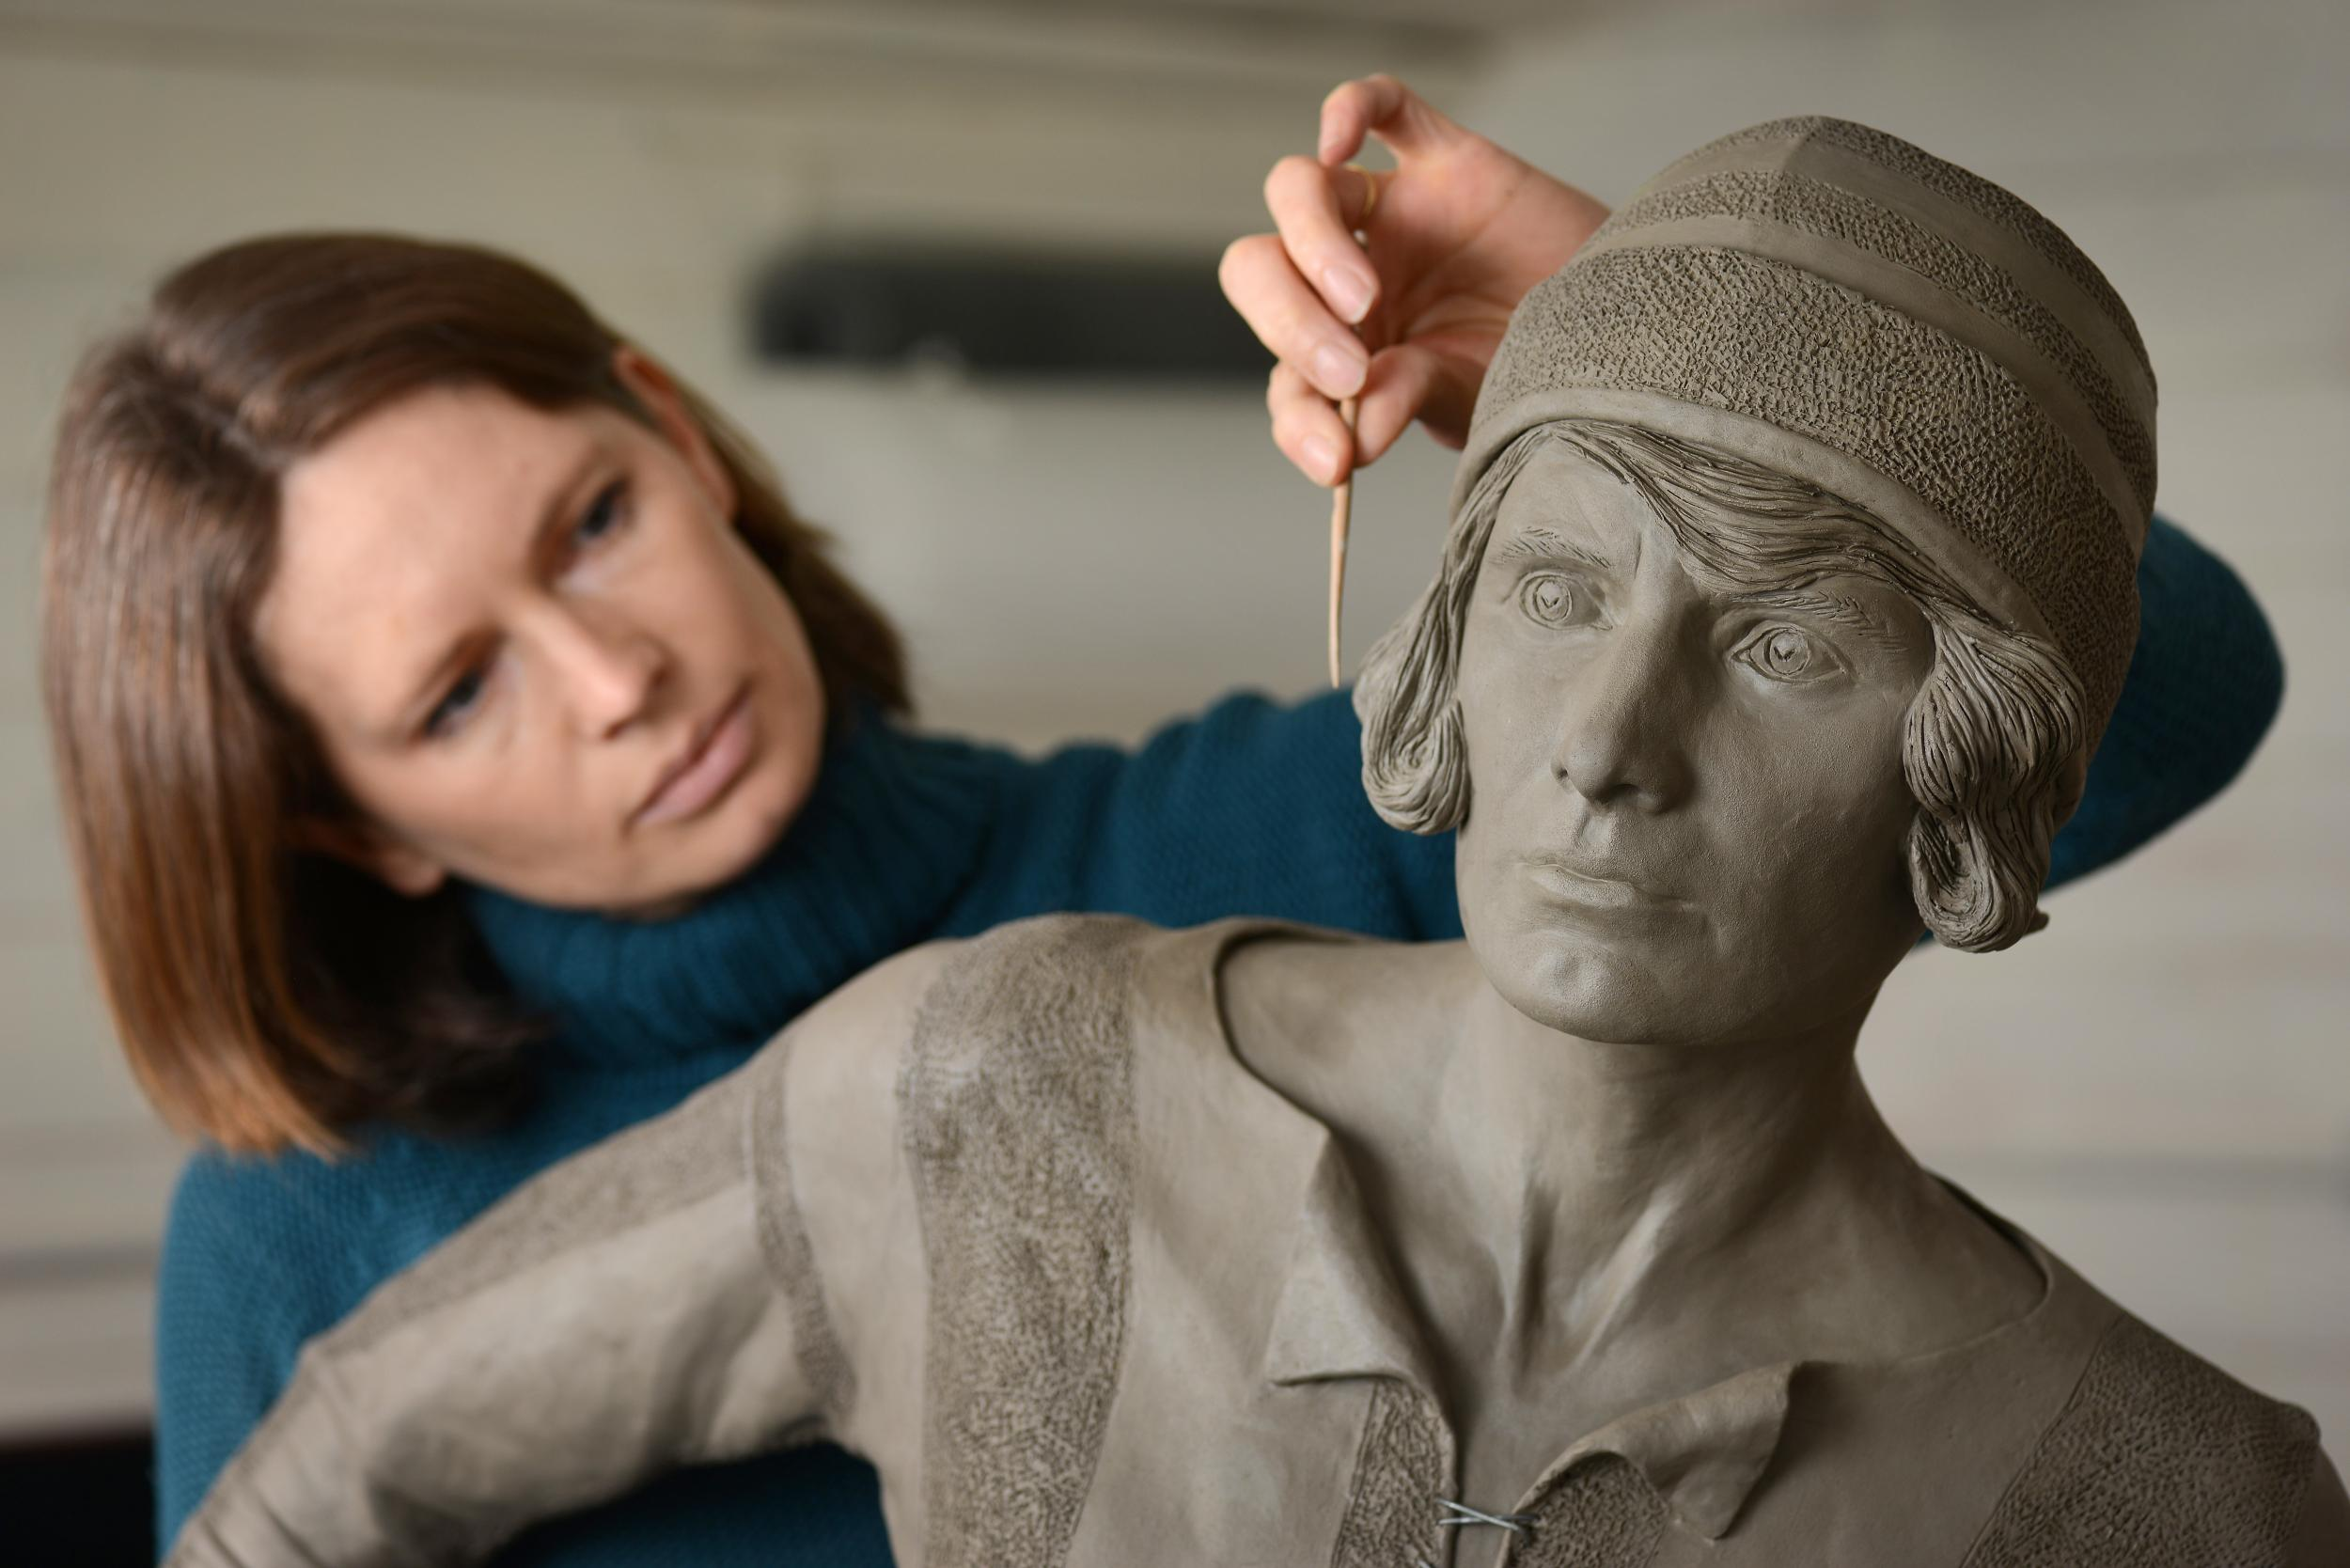 England's first statue of a woman footballer to be unveiled at National Football Museum